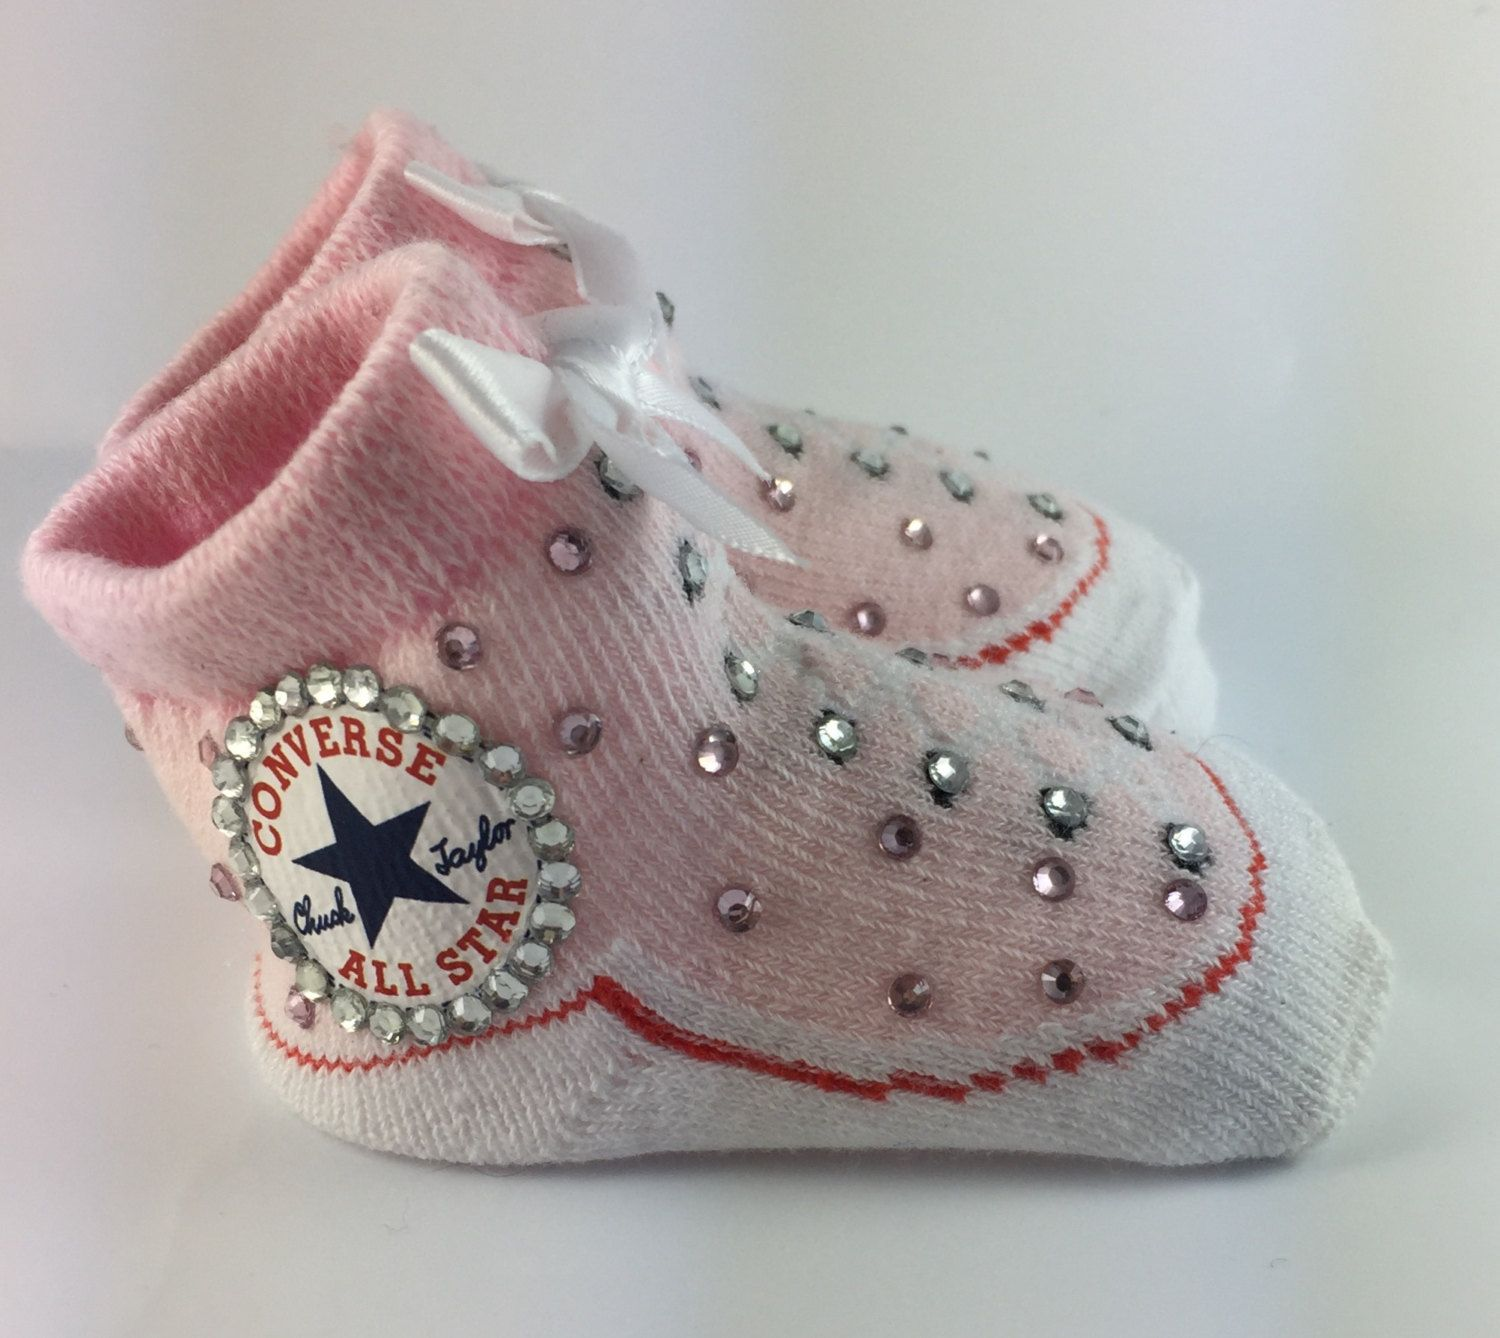 0237abe33877 Customised Baby Girl Pink Converse Booties by HuggyWuggys on Etsy